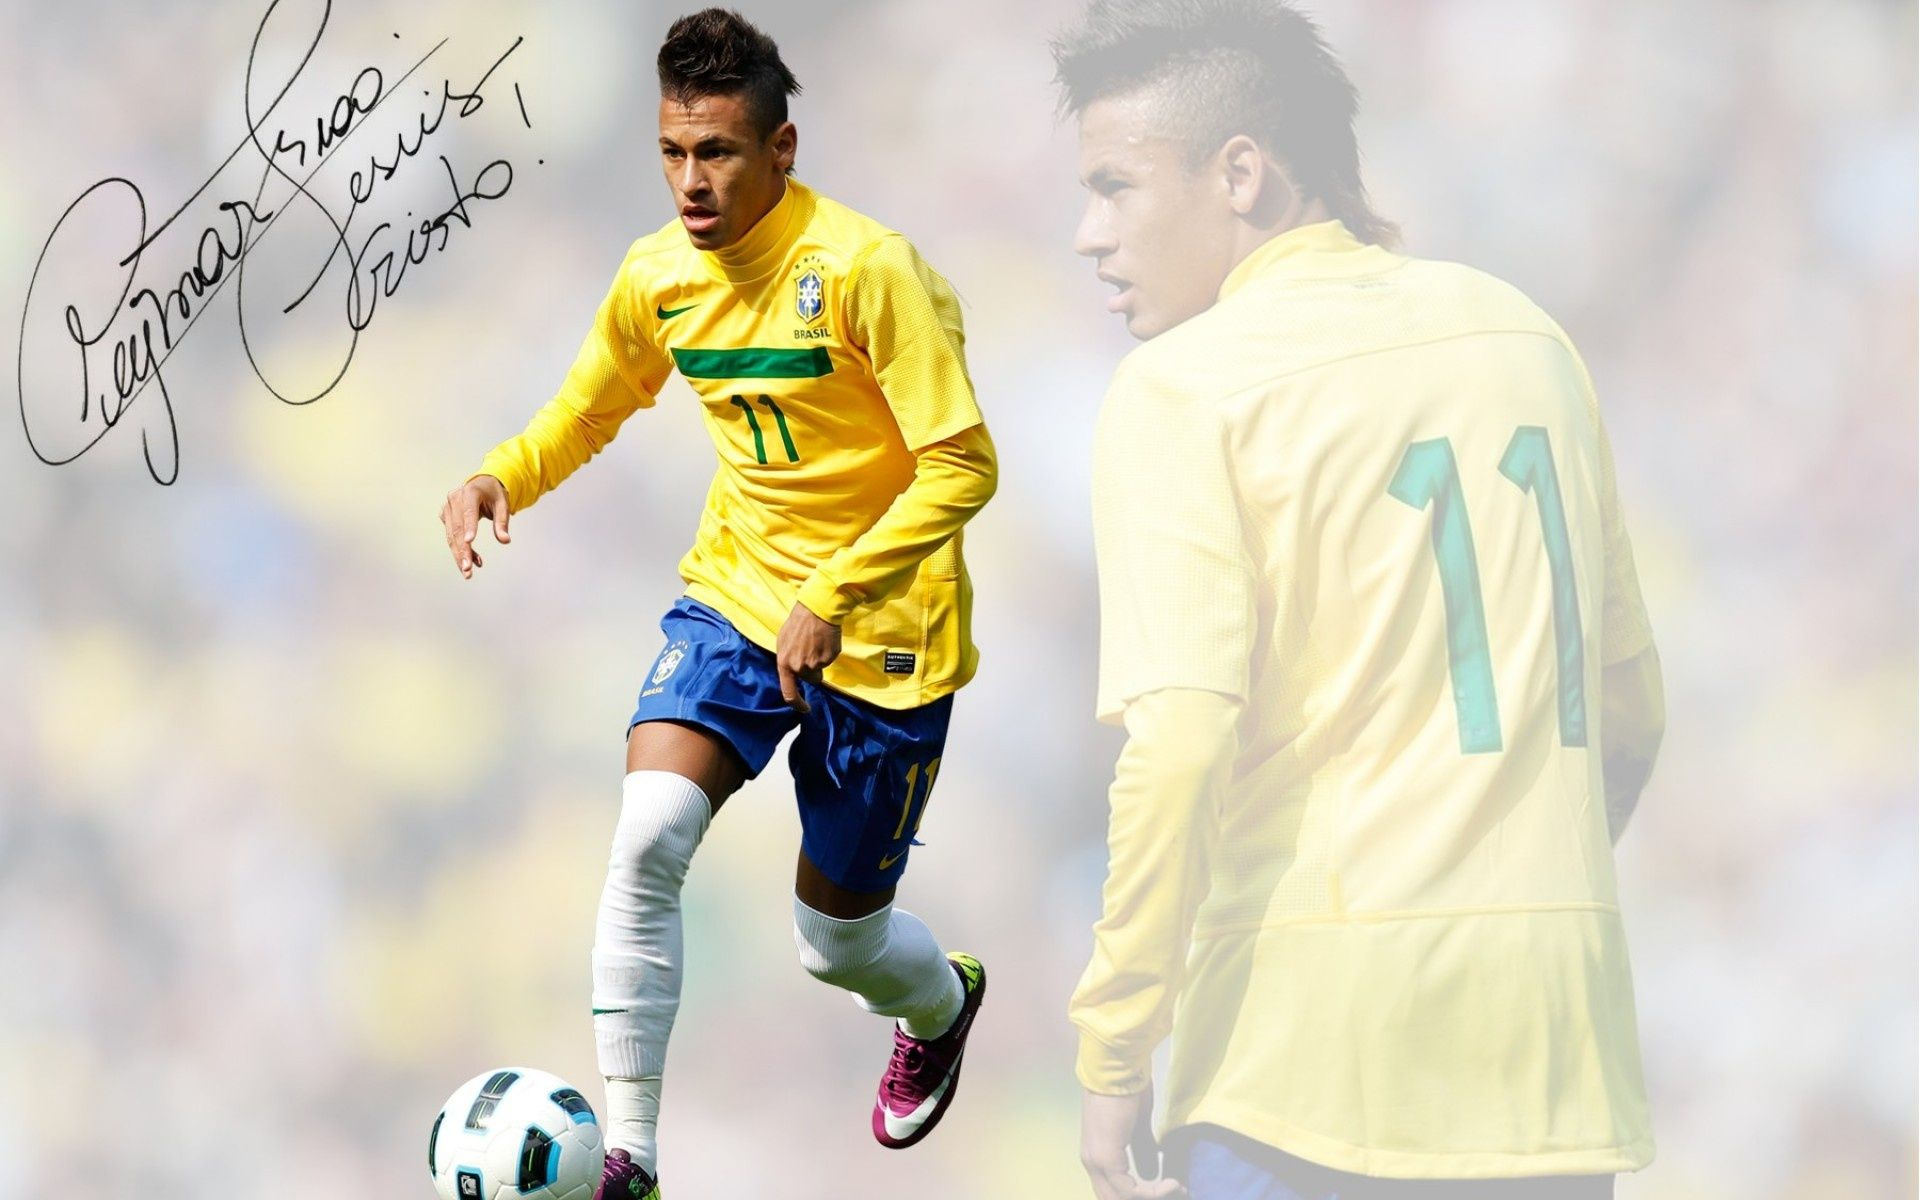 neymar brazil desktop wallpaper | neymar jr themes | pinterest